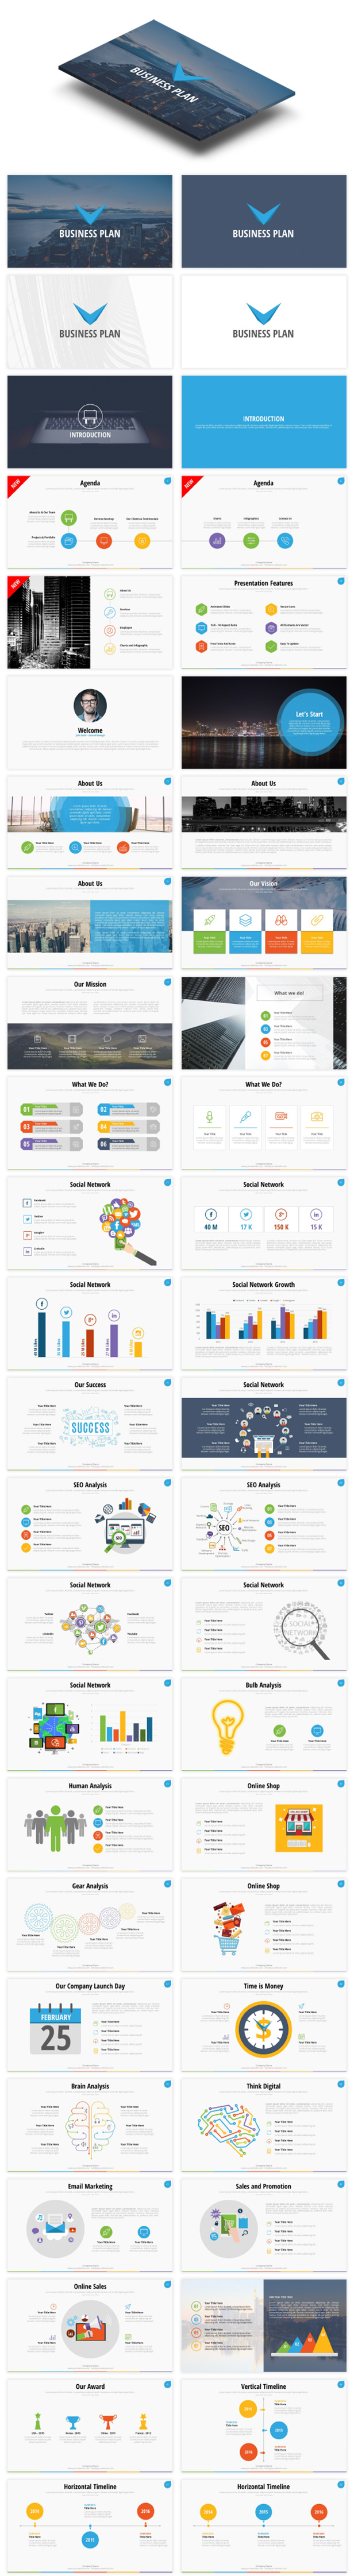 Startup Business Plan Ppt Pitch Deck By Spriteit Graphicriver